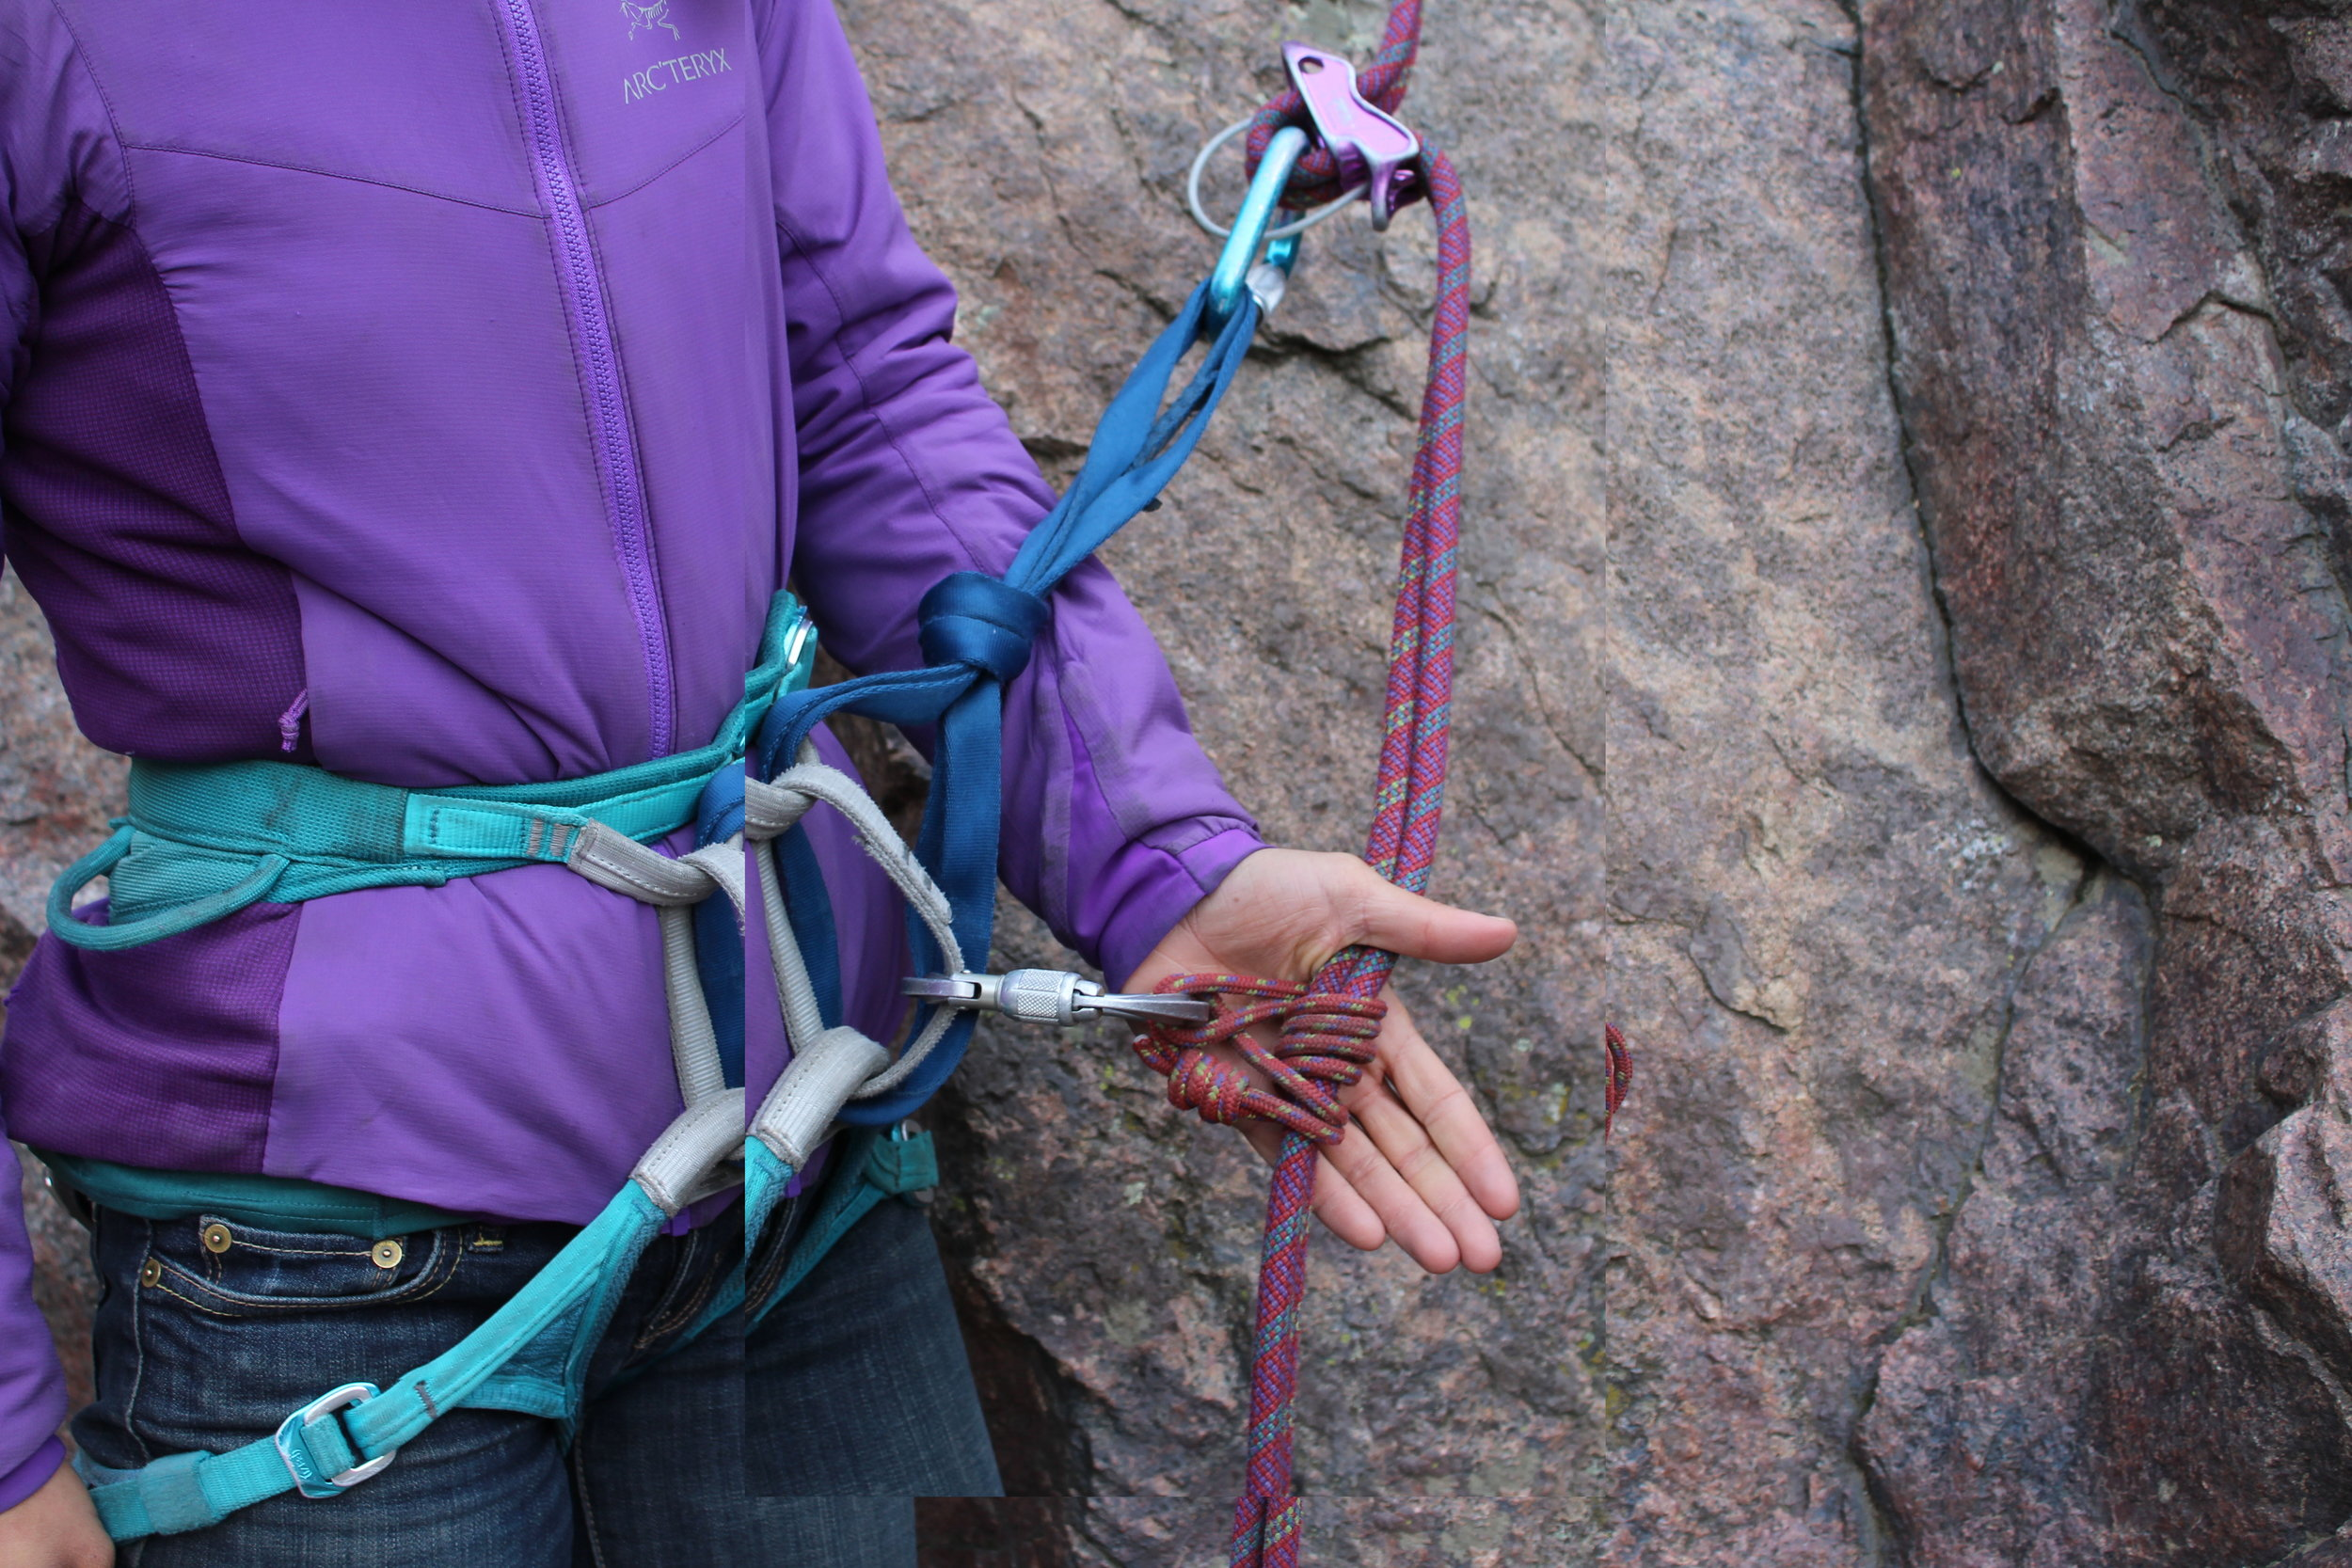 ...and the autoblock is completed by rejoining the nylon loop with the locking carabiner.